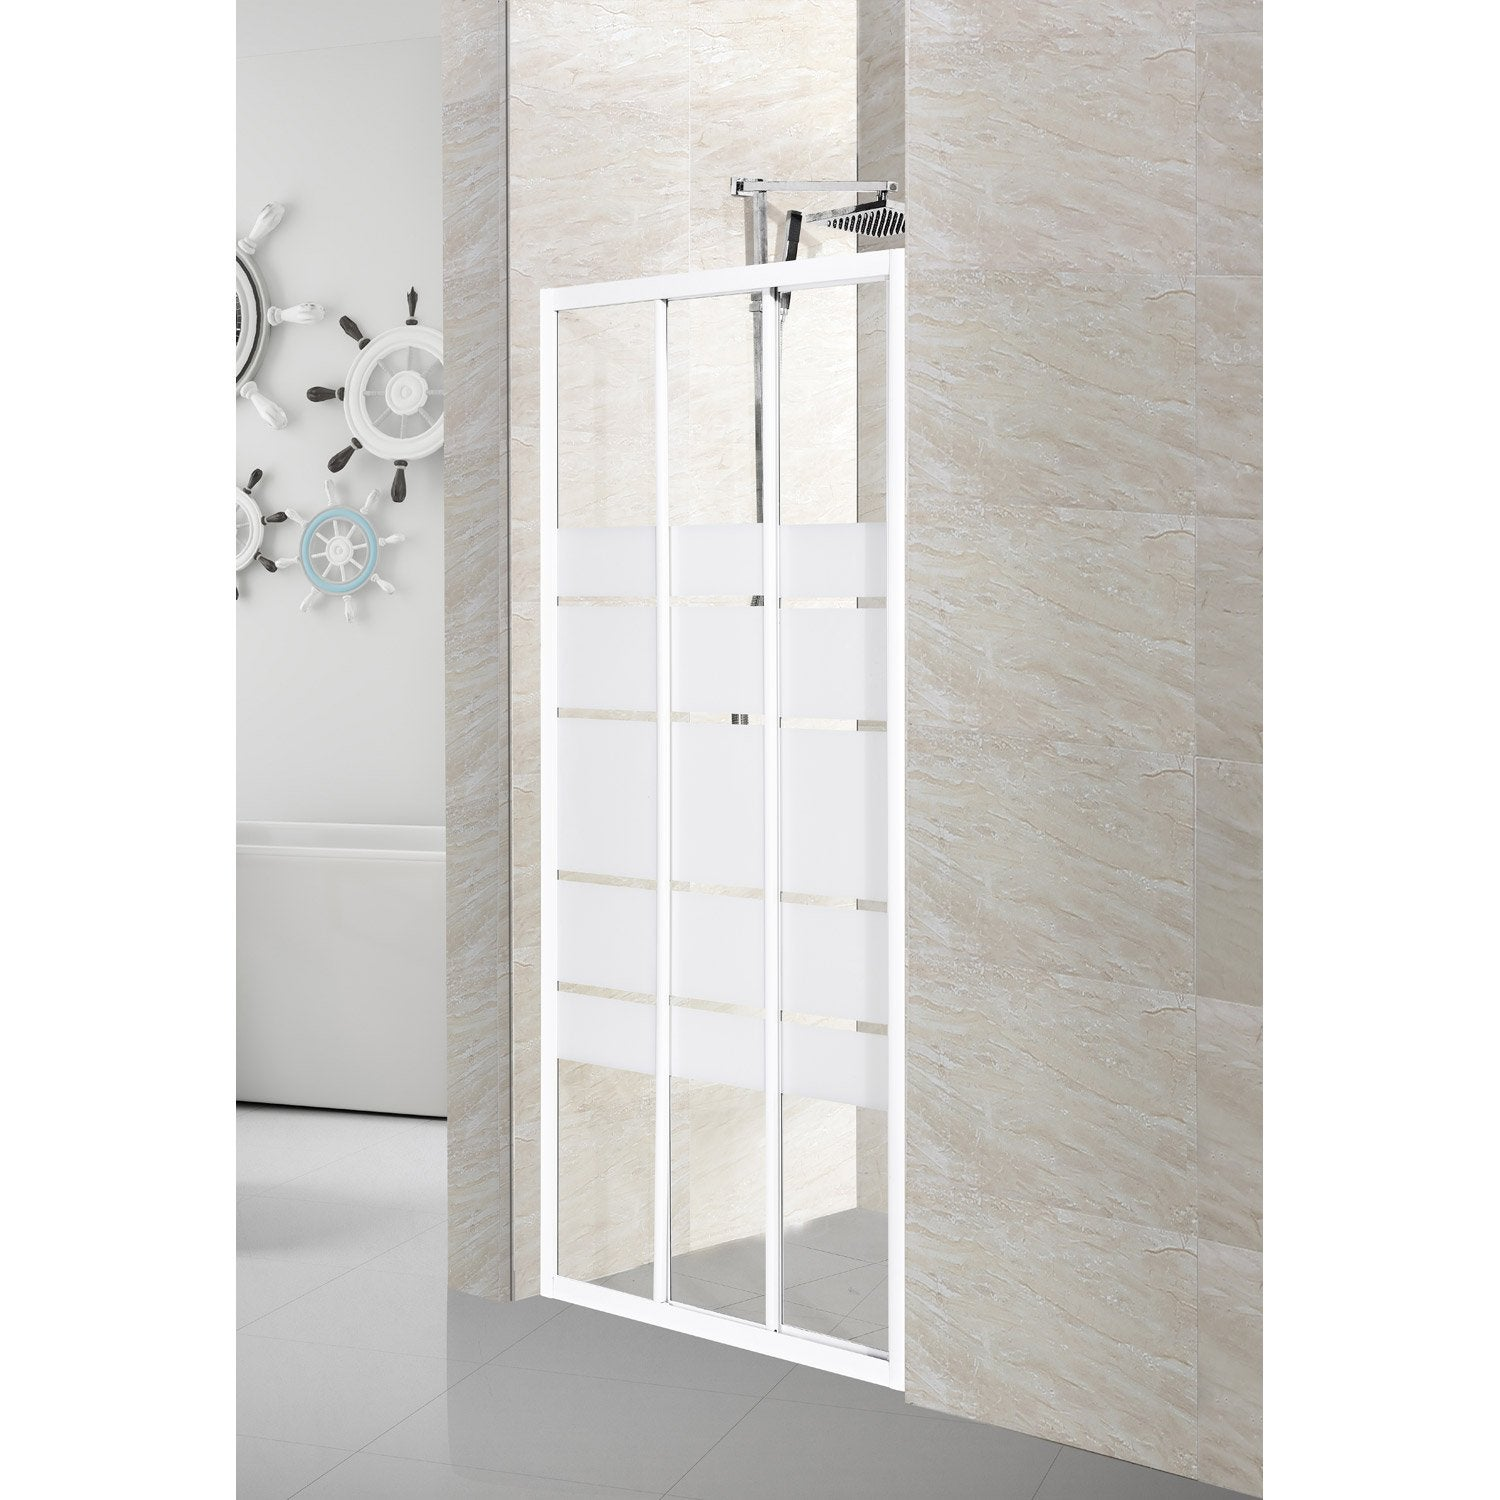 porte de douche coulissante 99 cm s rigraphi nerea. Black Bedroom Furniture Sets. Home Design Ideas